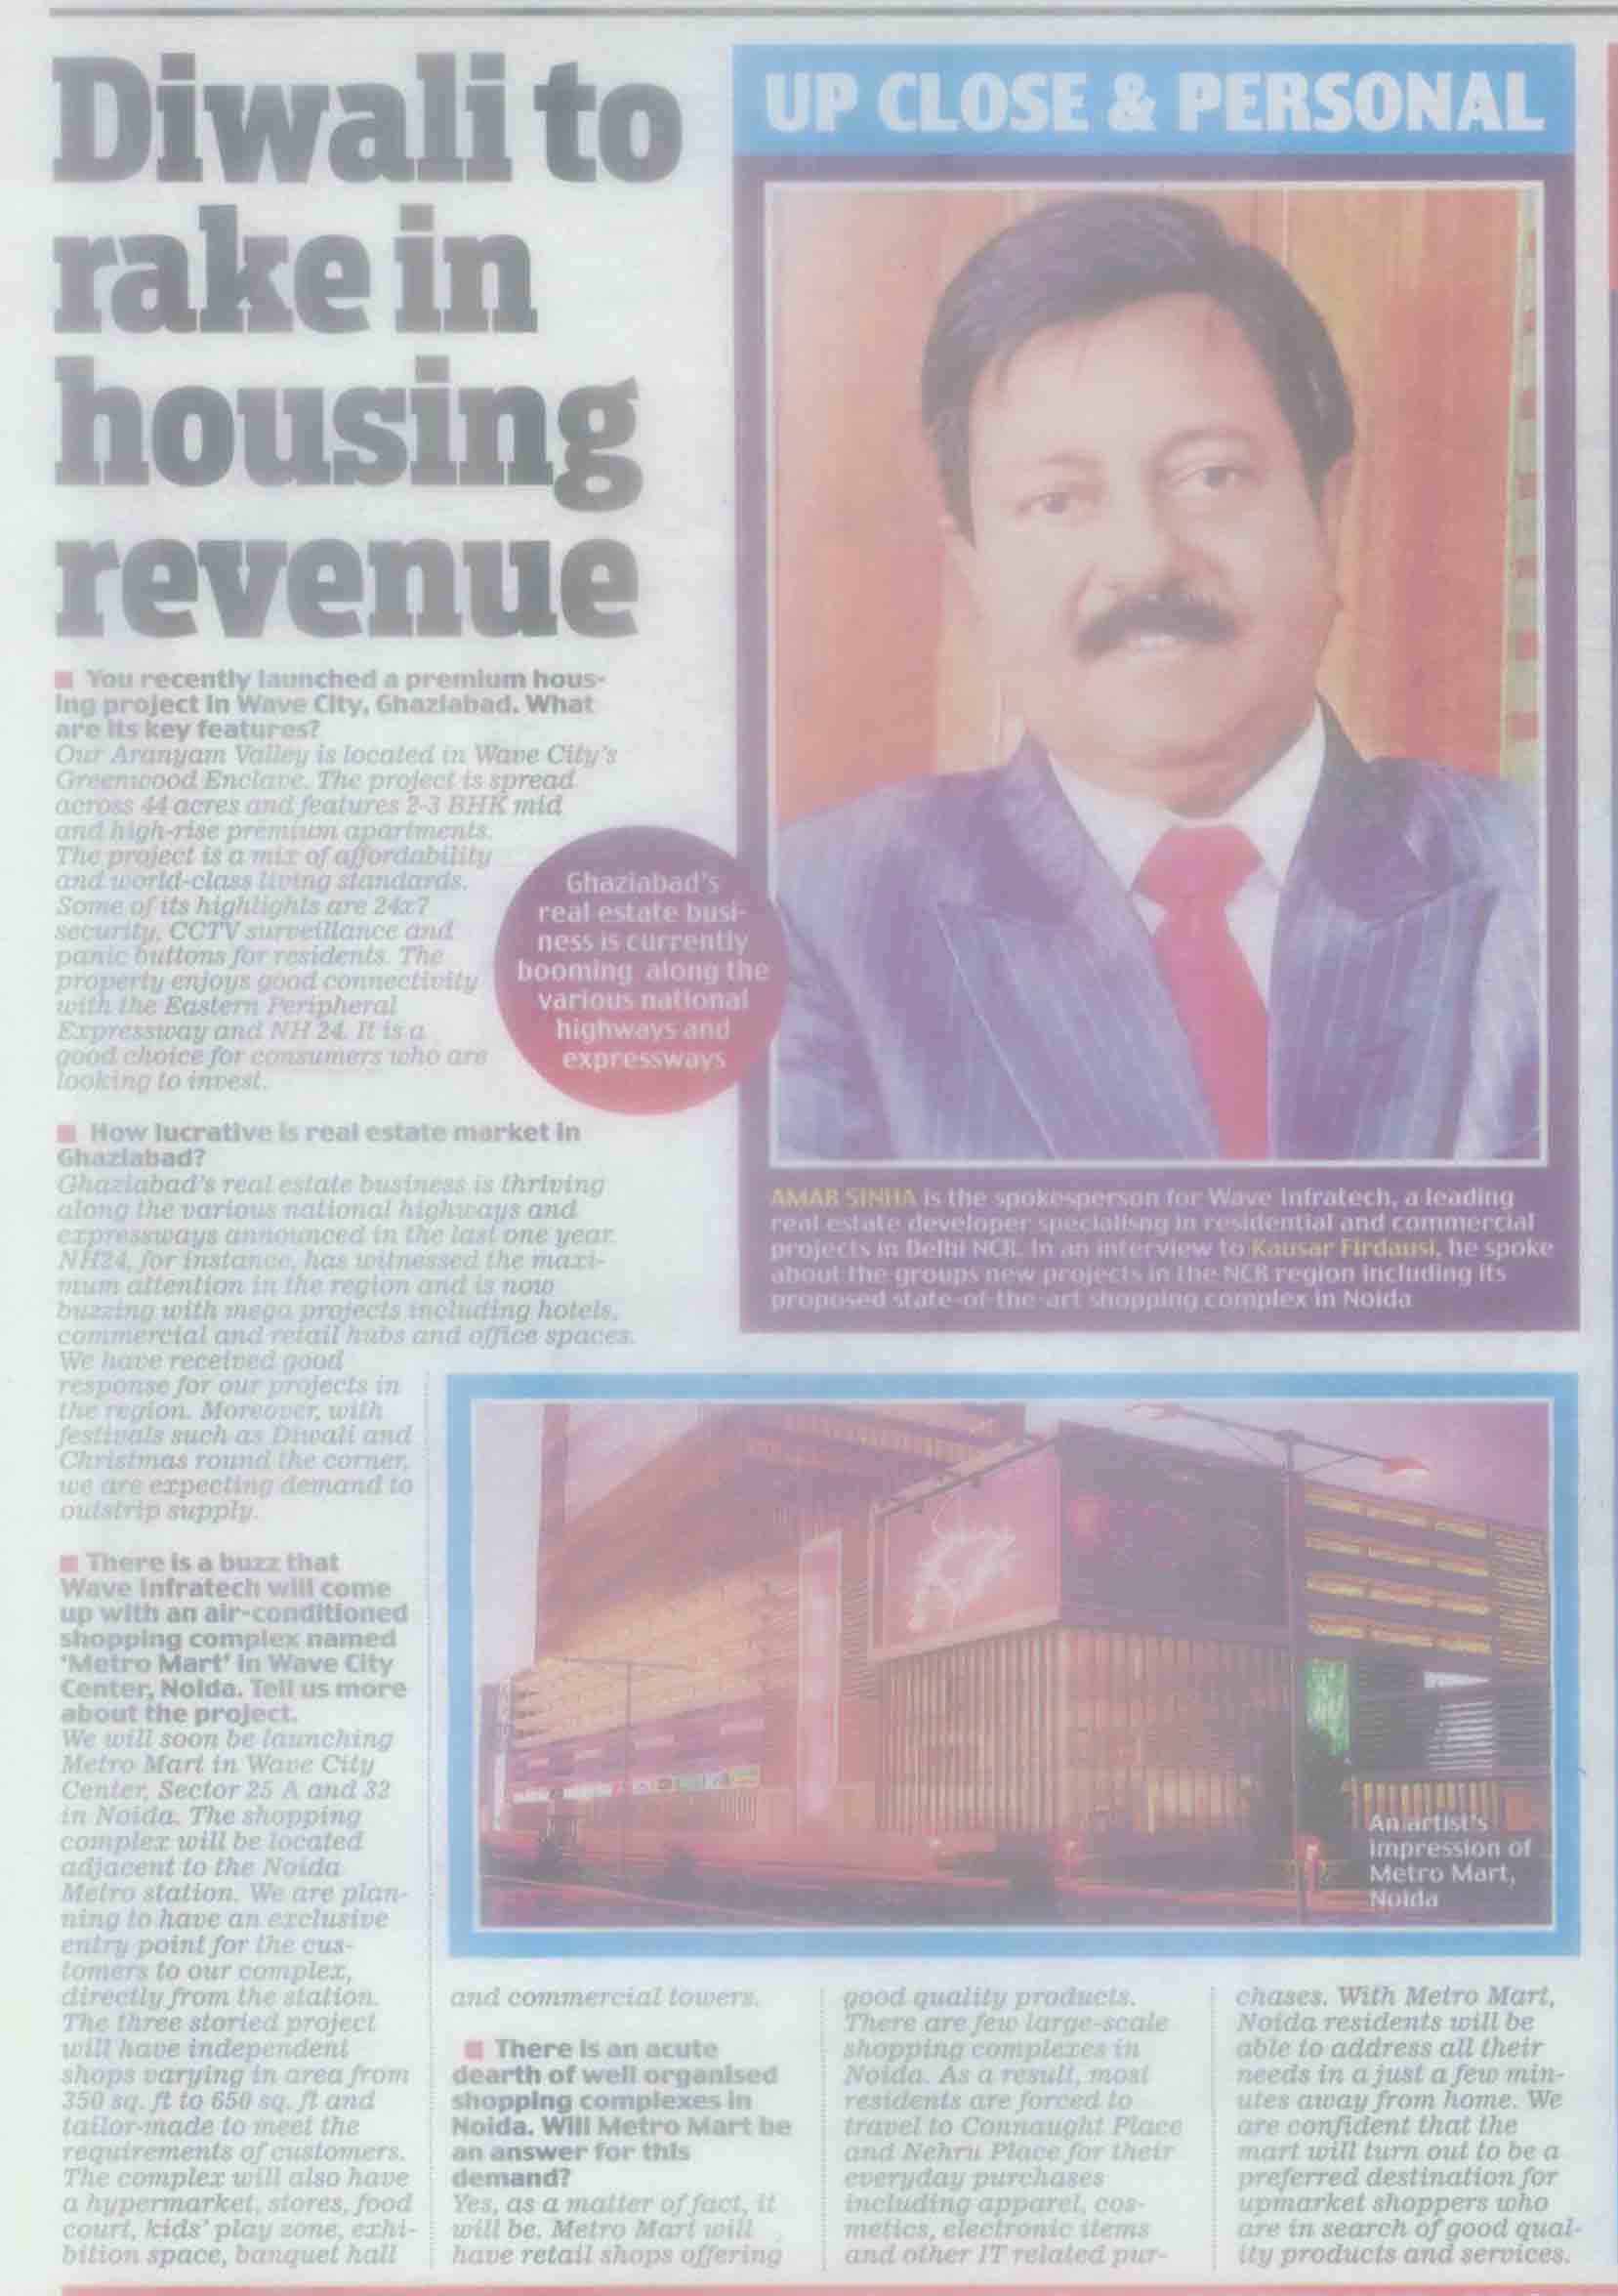 Diwali to rack in housing revenue